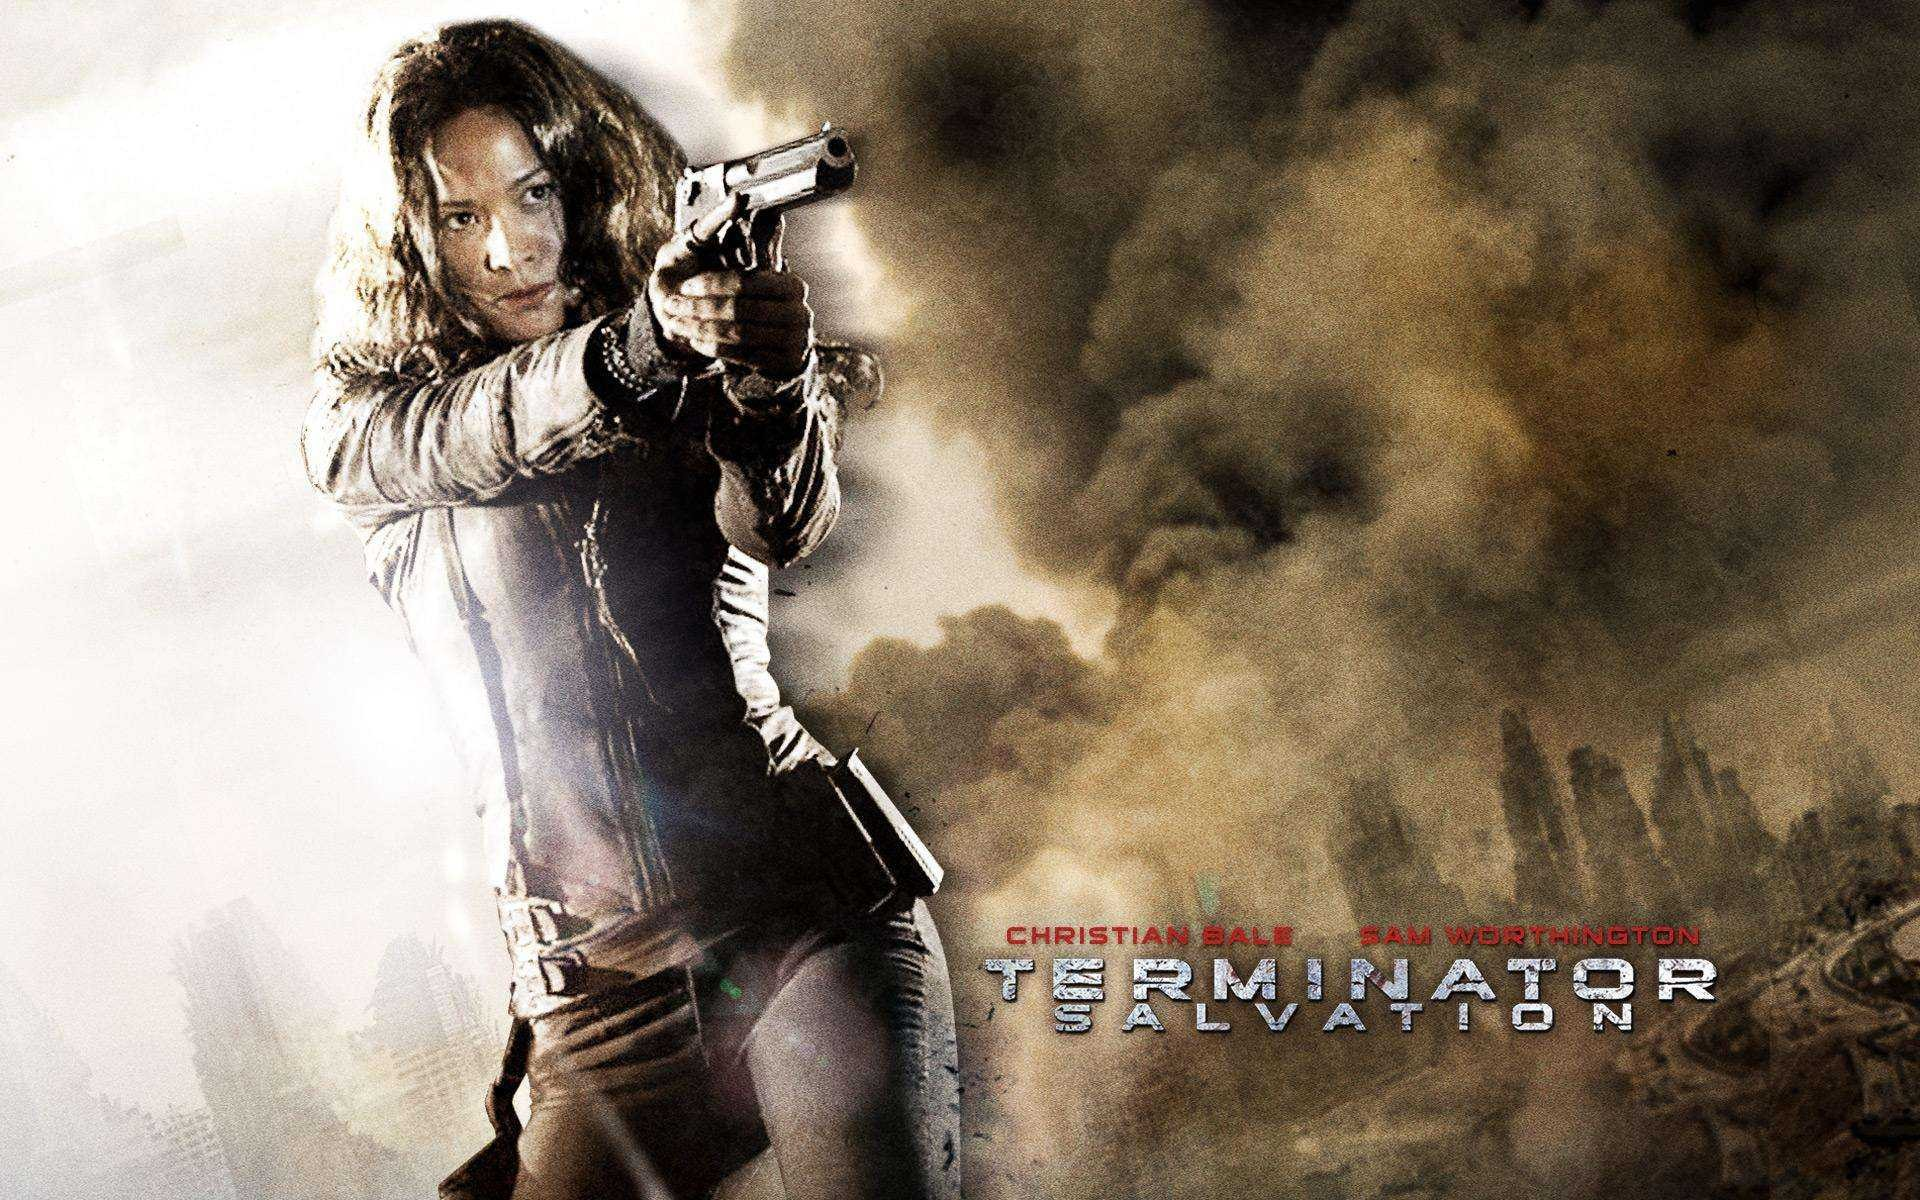 Un wallpaper del film Terminator Salvation con Moon Bloodgood